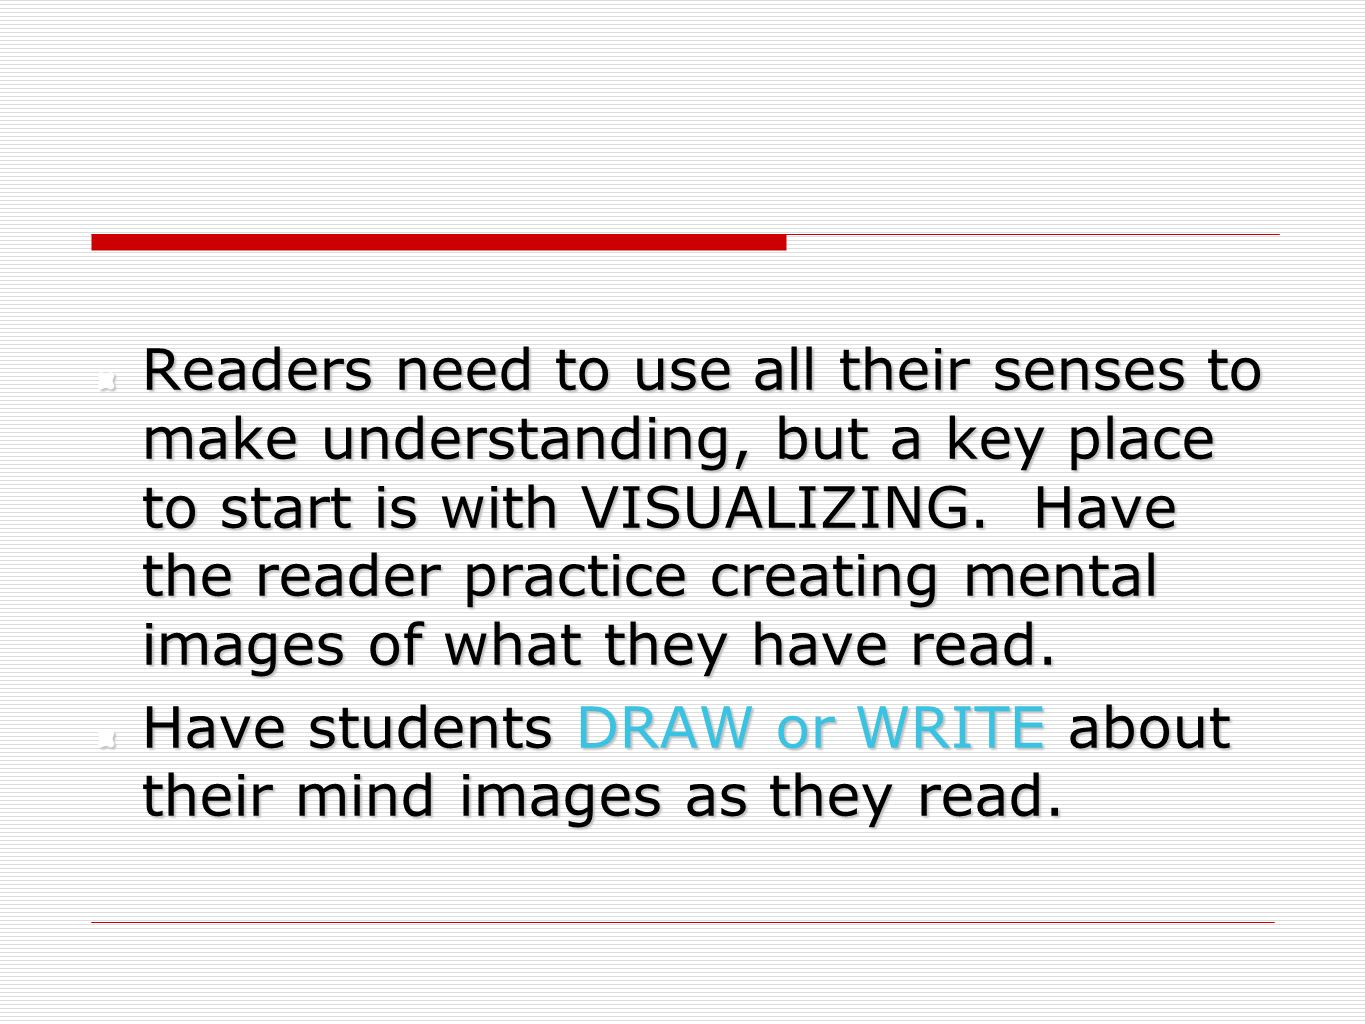 Readers need to use all their senses to make understanding, but a key place to start is with VISUALIZING. Have the reader practice creating mental images of what they have read.